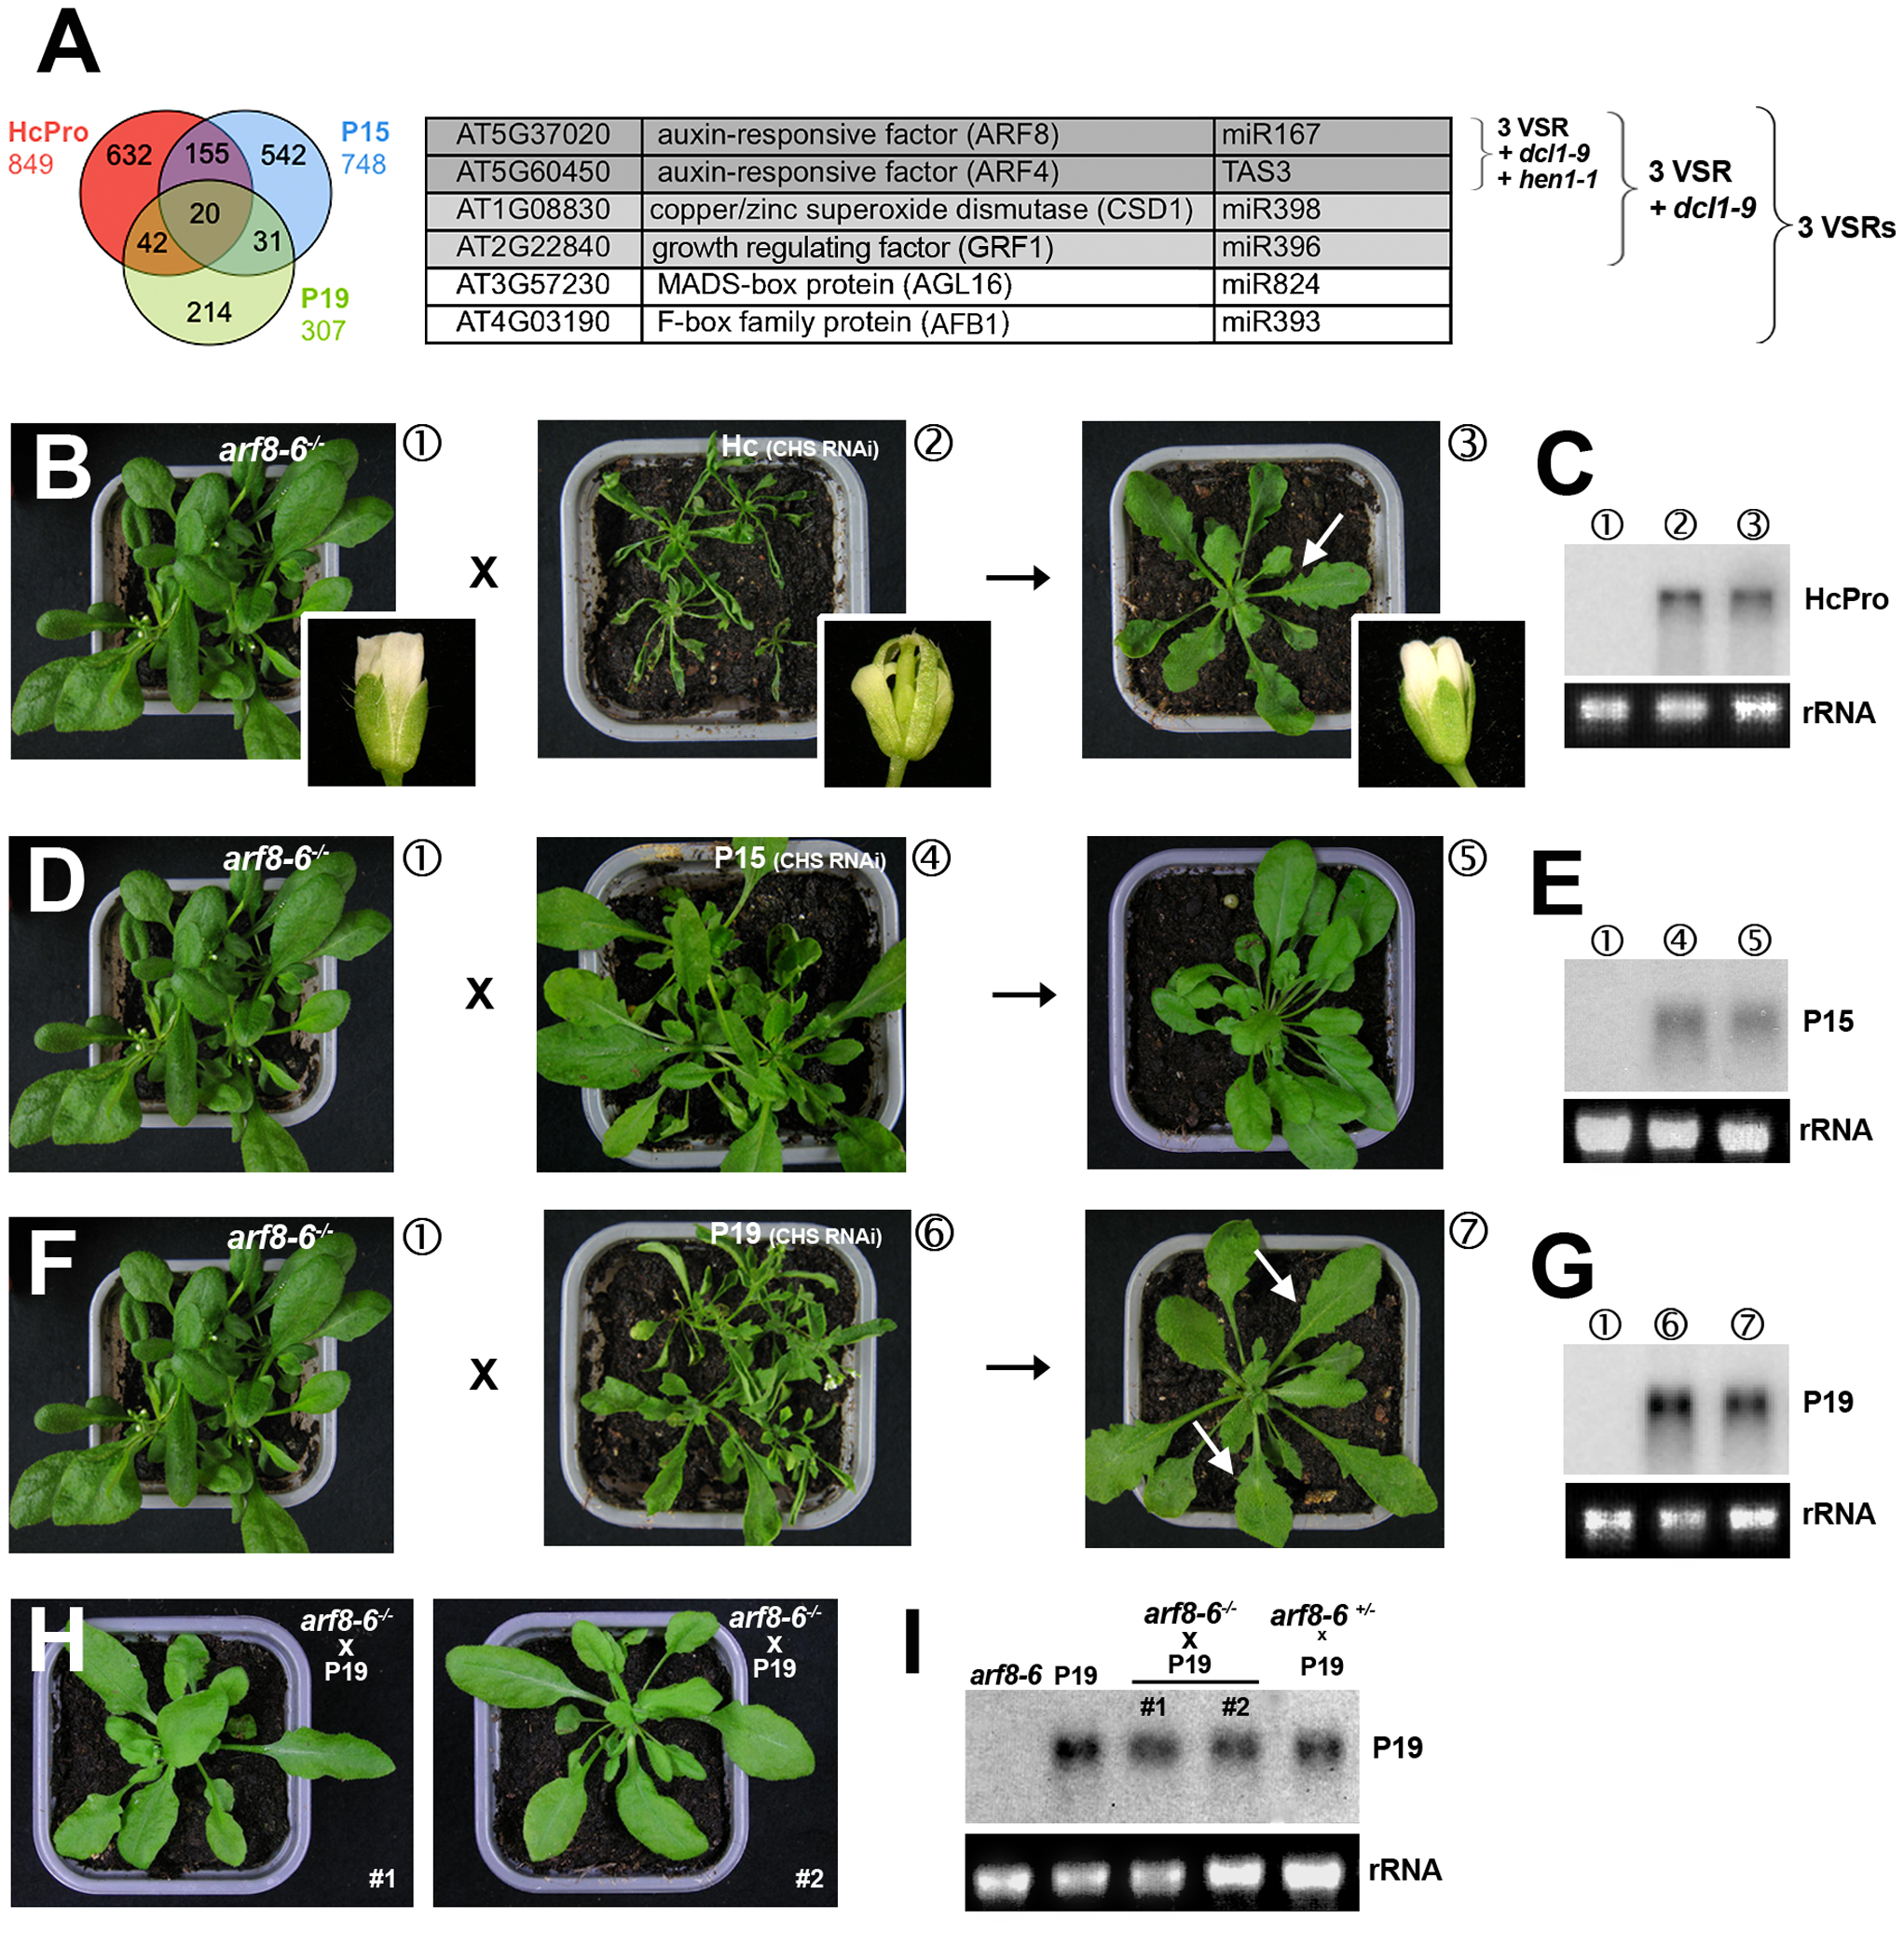 Heterozygous and homozygous <i>arf8</i> mutant backgrounds respectively attenuate and alleviate the developmental phenotypes incurred by VSRs.